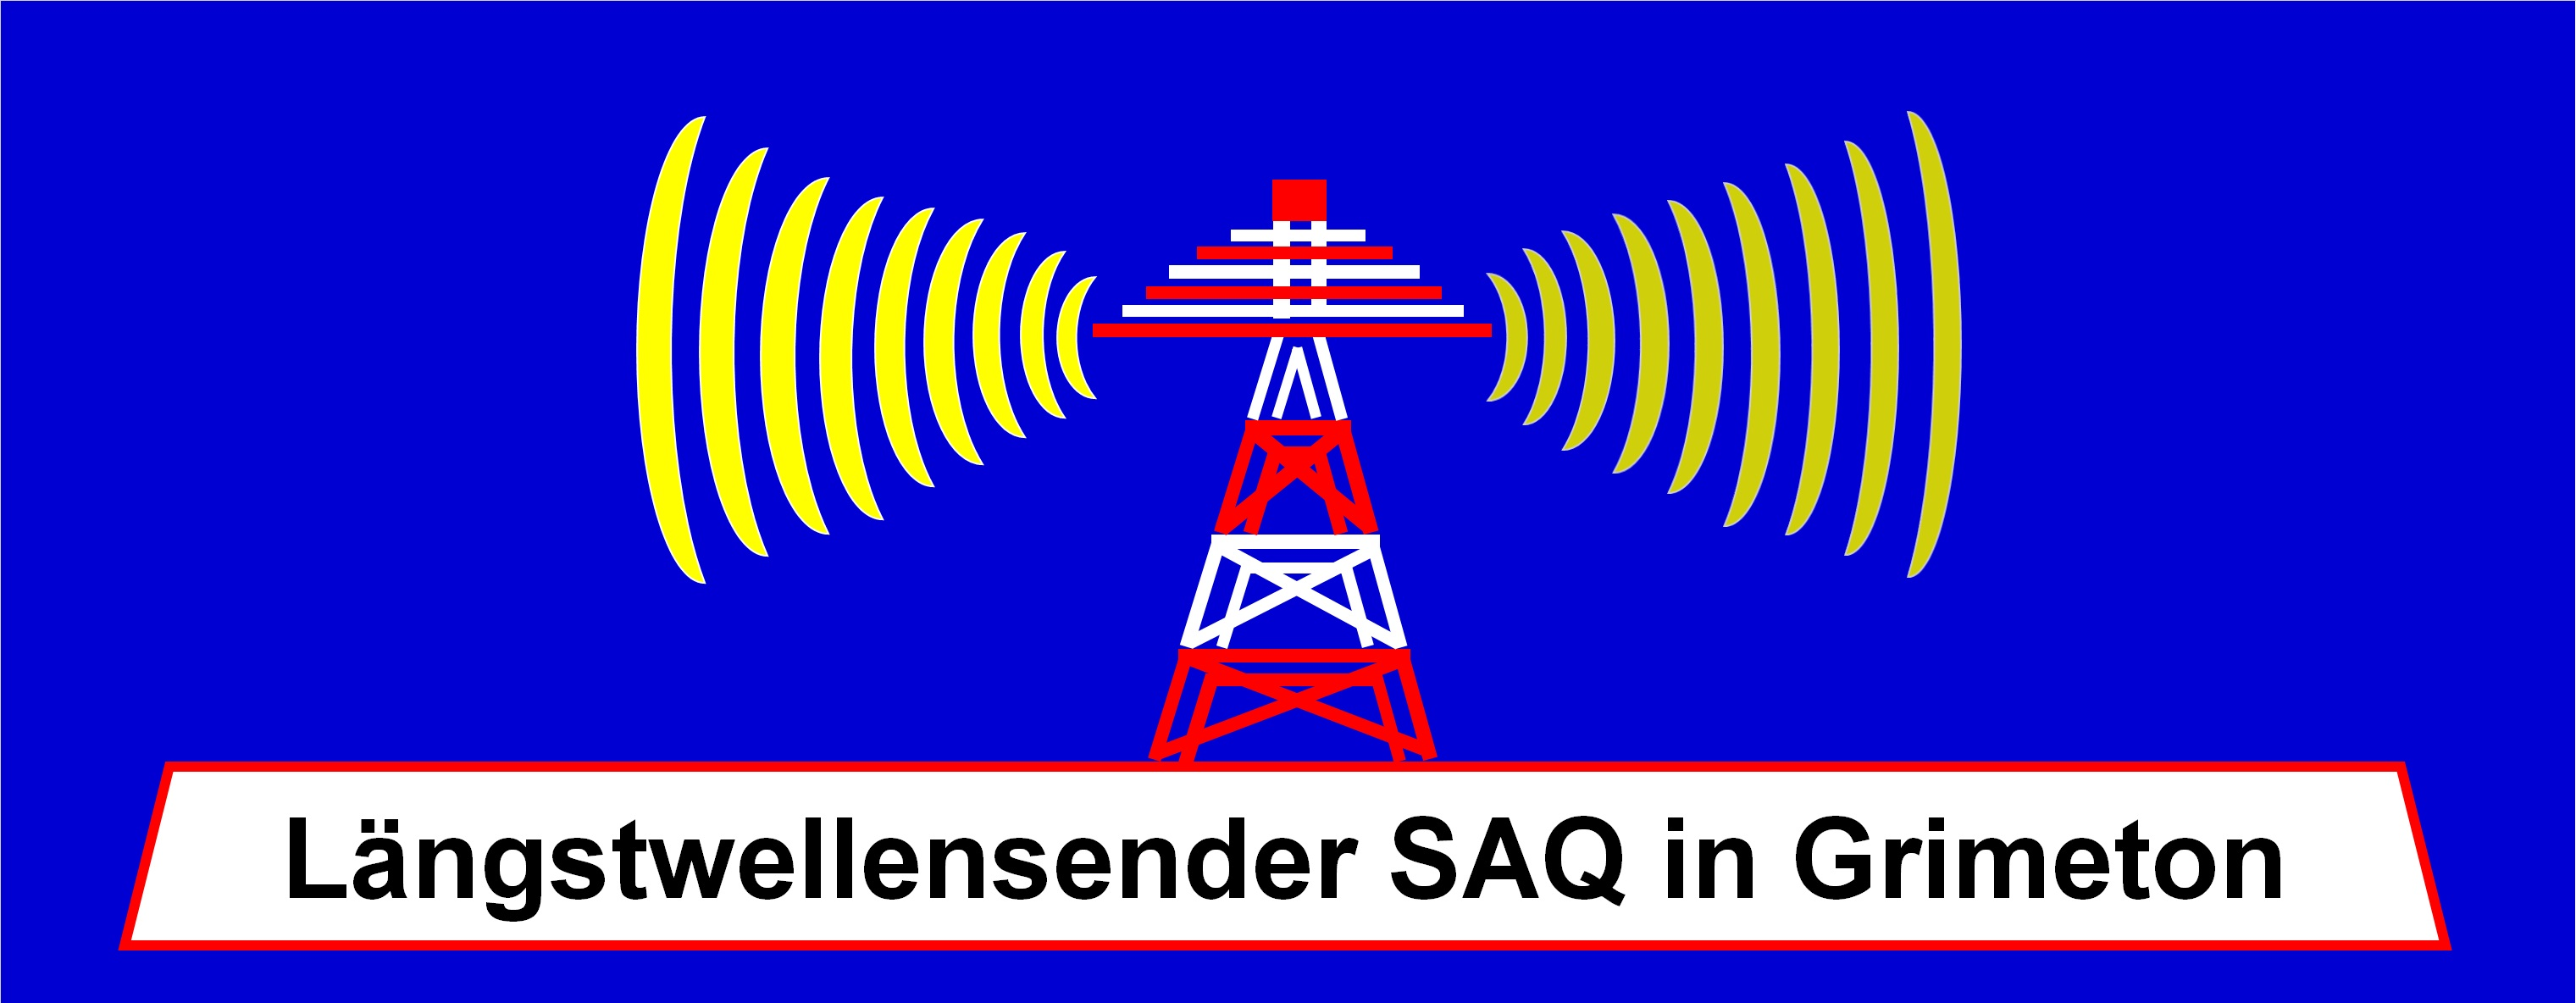 Längstwellensender SAQ in Grimeton